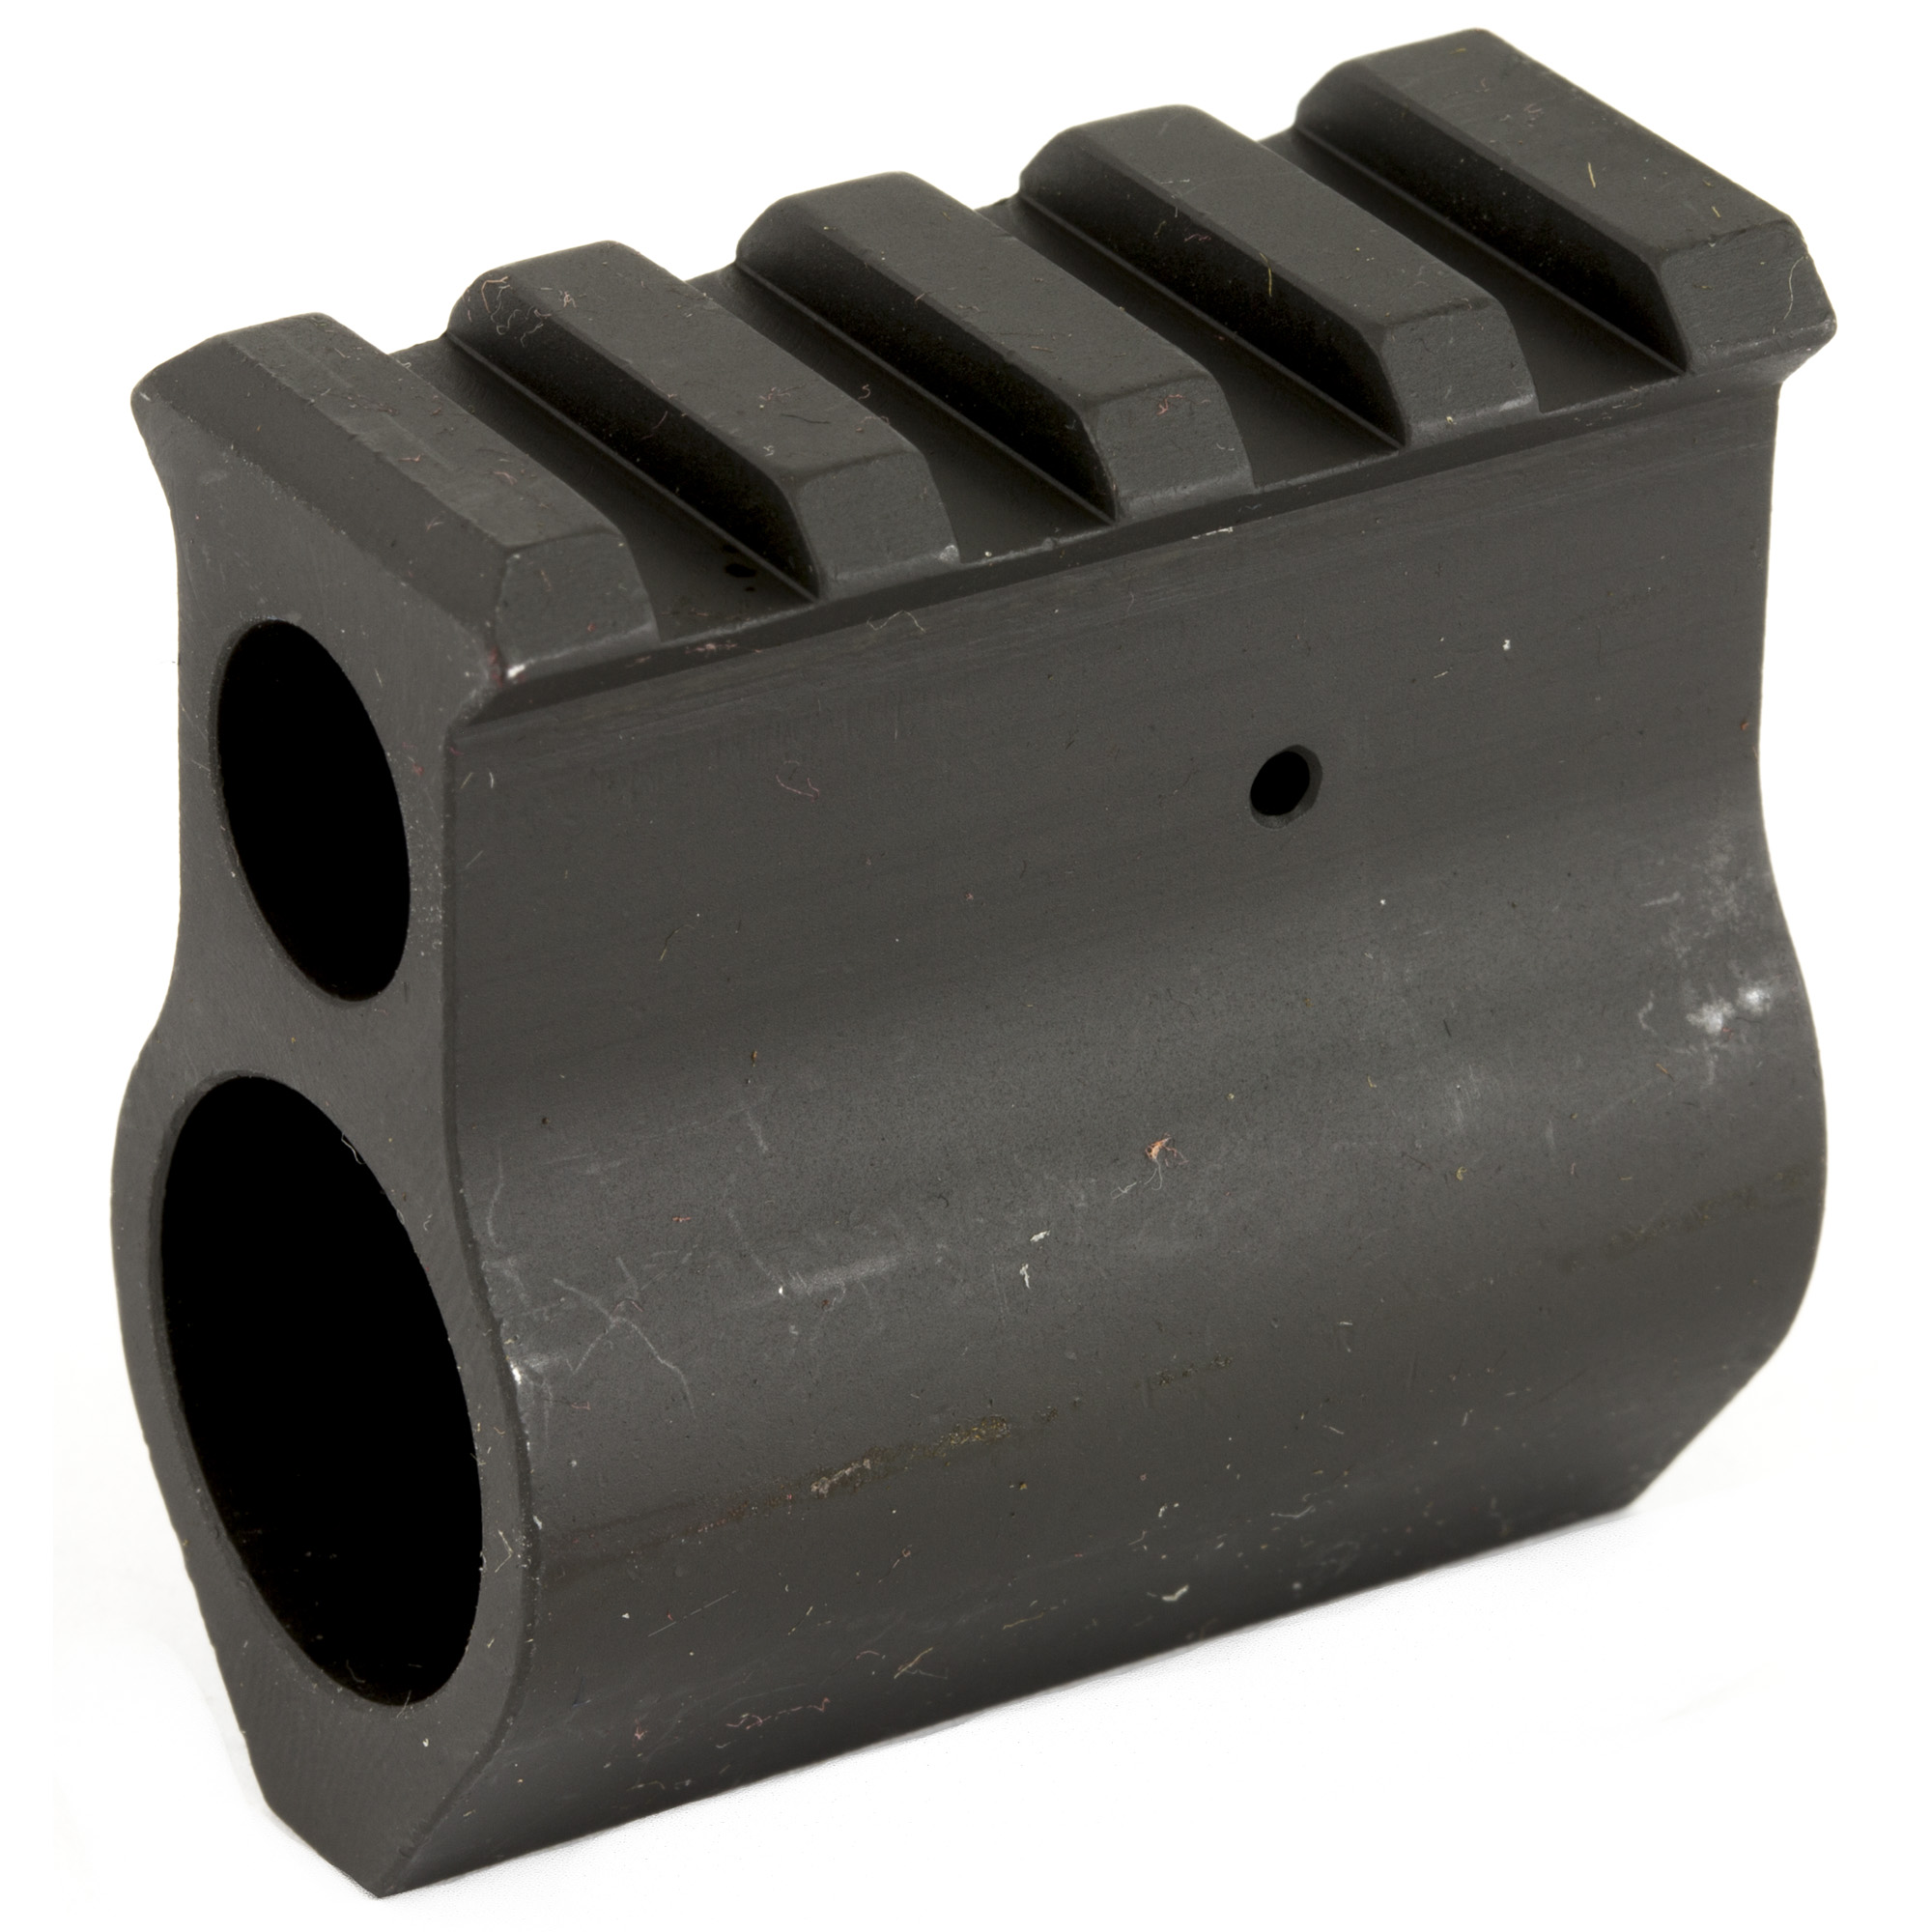 The Midwest Industries railed gas block is machined to same height as A-4 uppers and fits .750 diameter barrels.